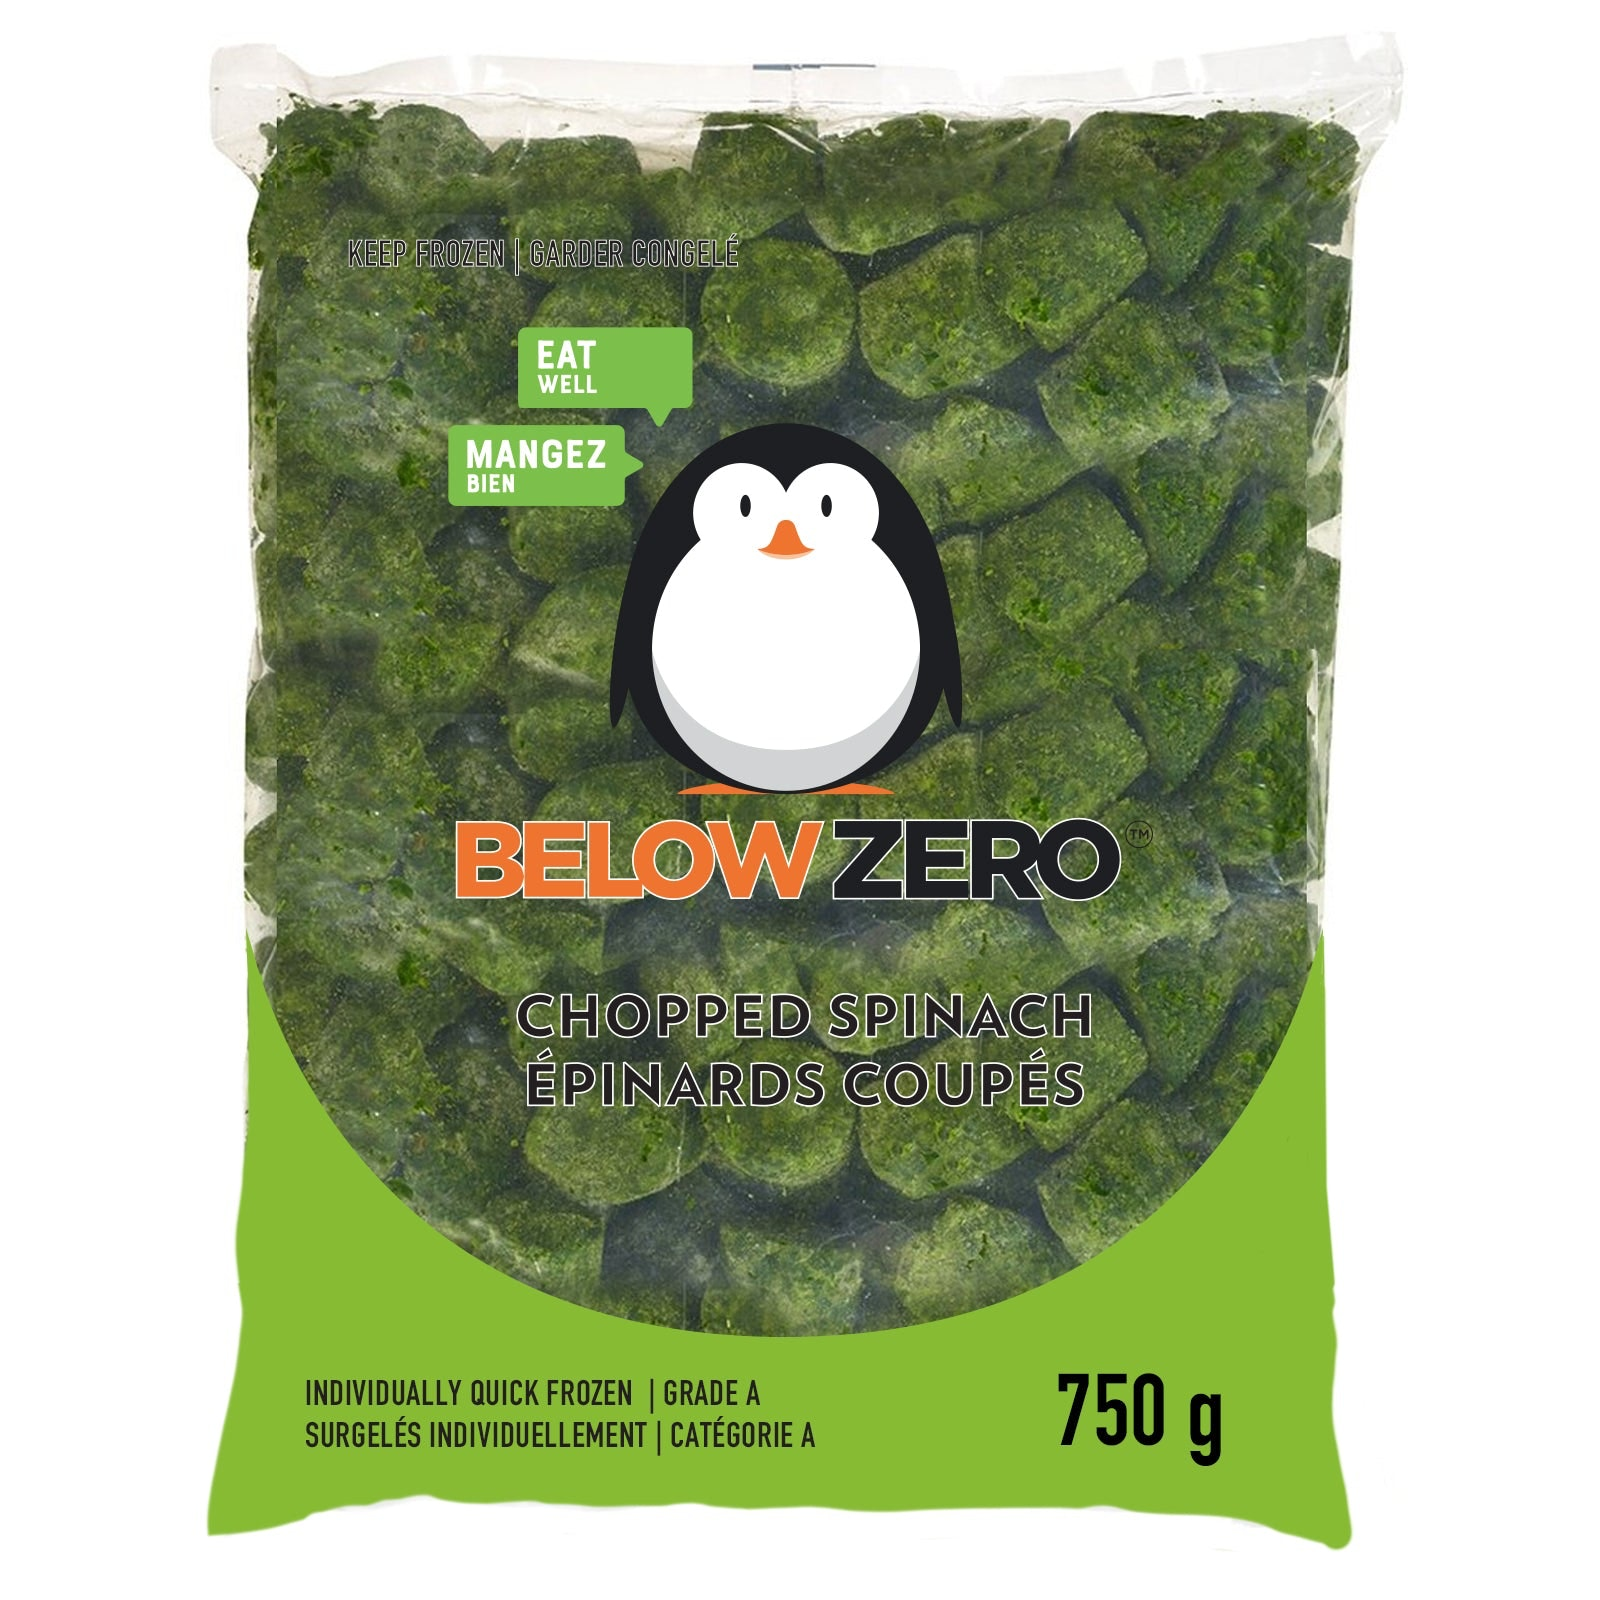 BELOW ZERO Chopped spinach